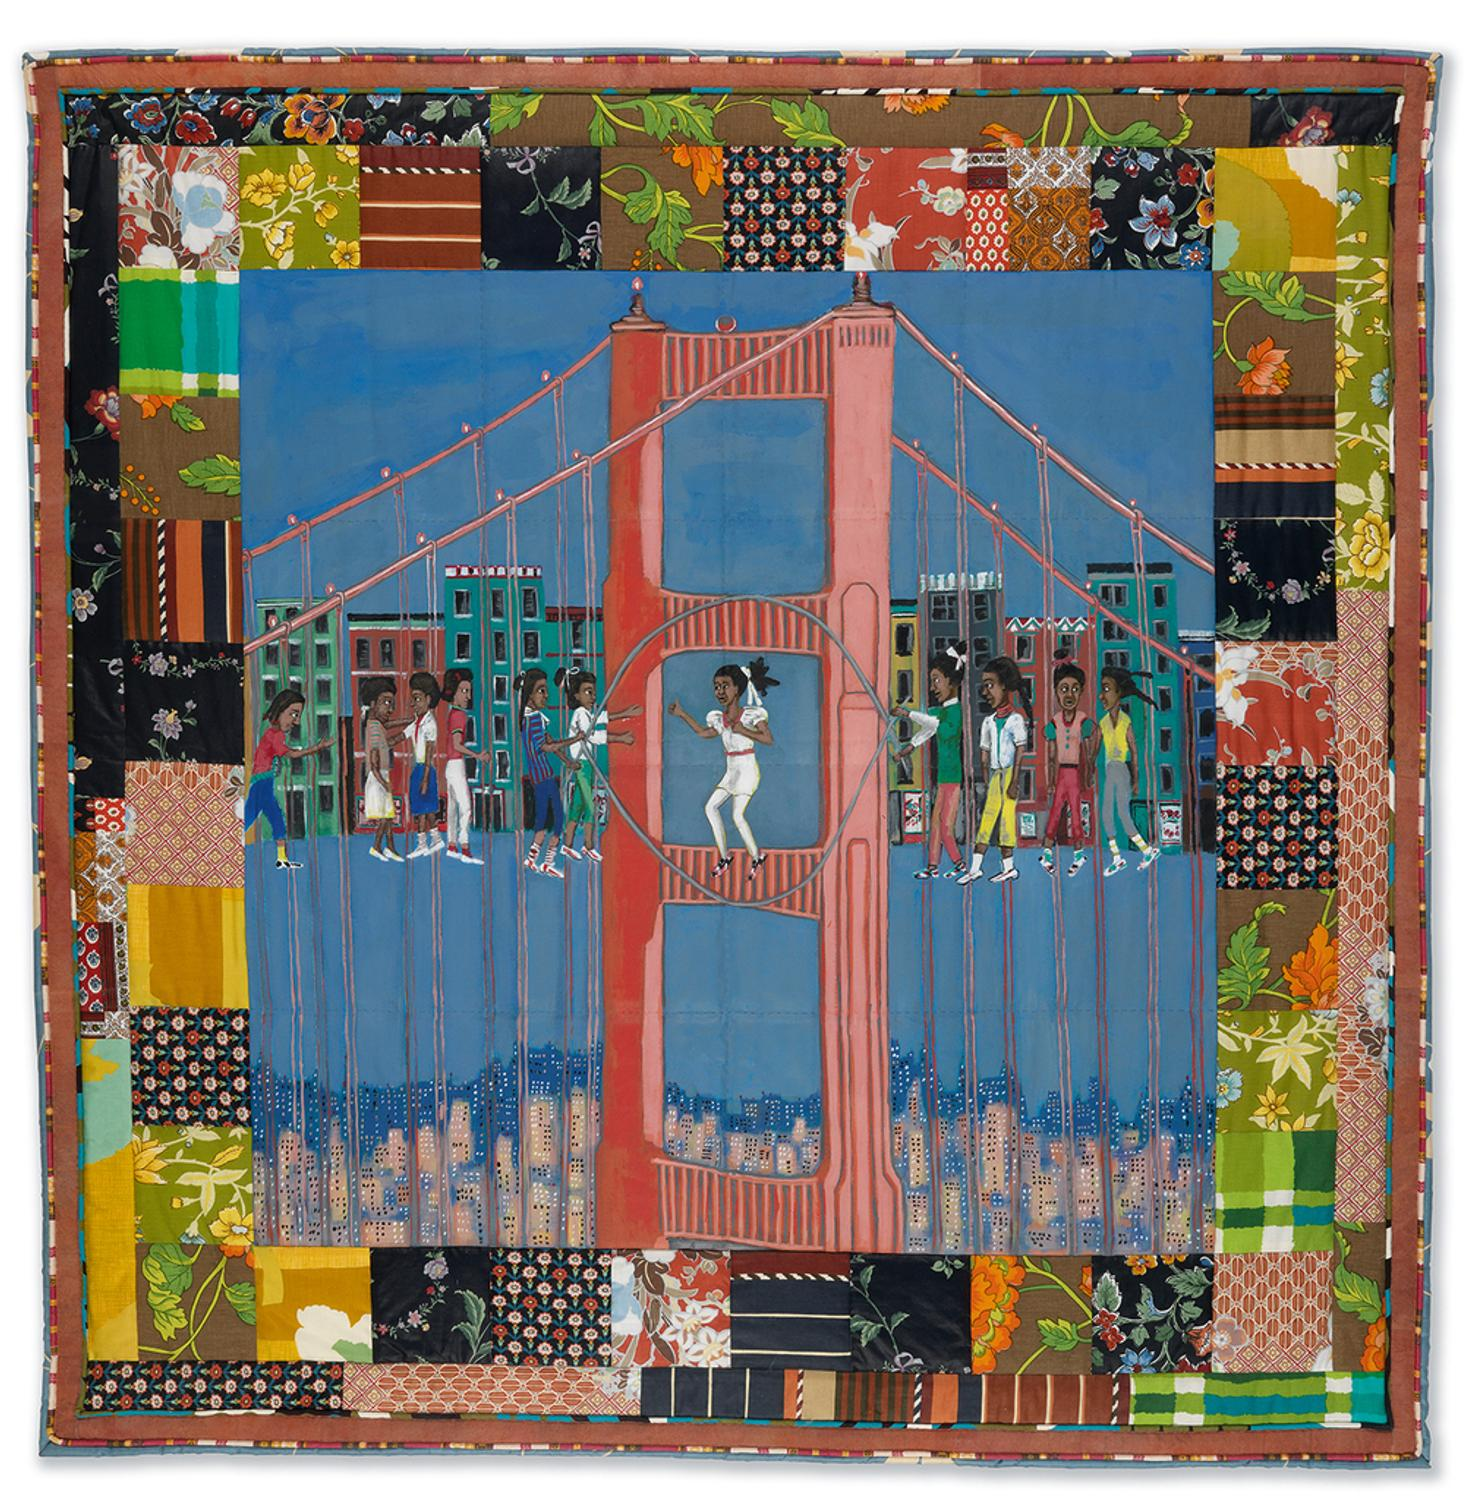 Quilt by Faith Ringgold